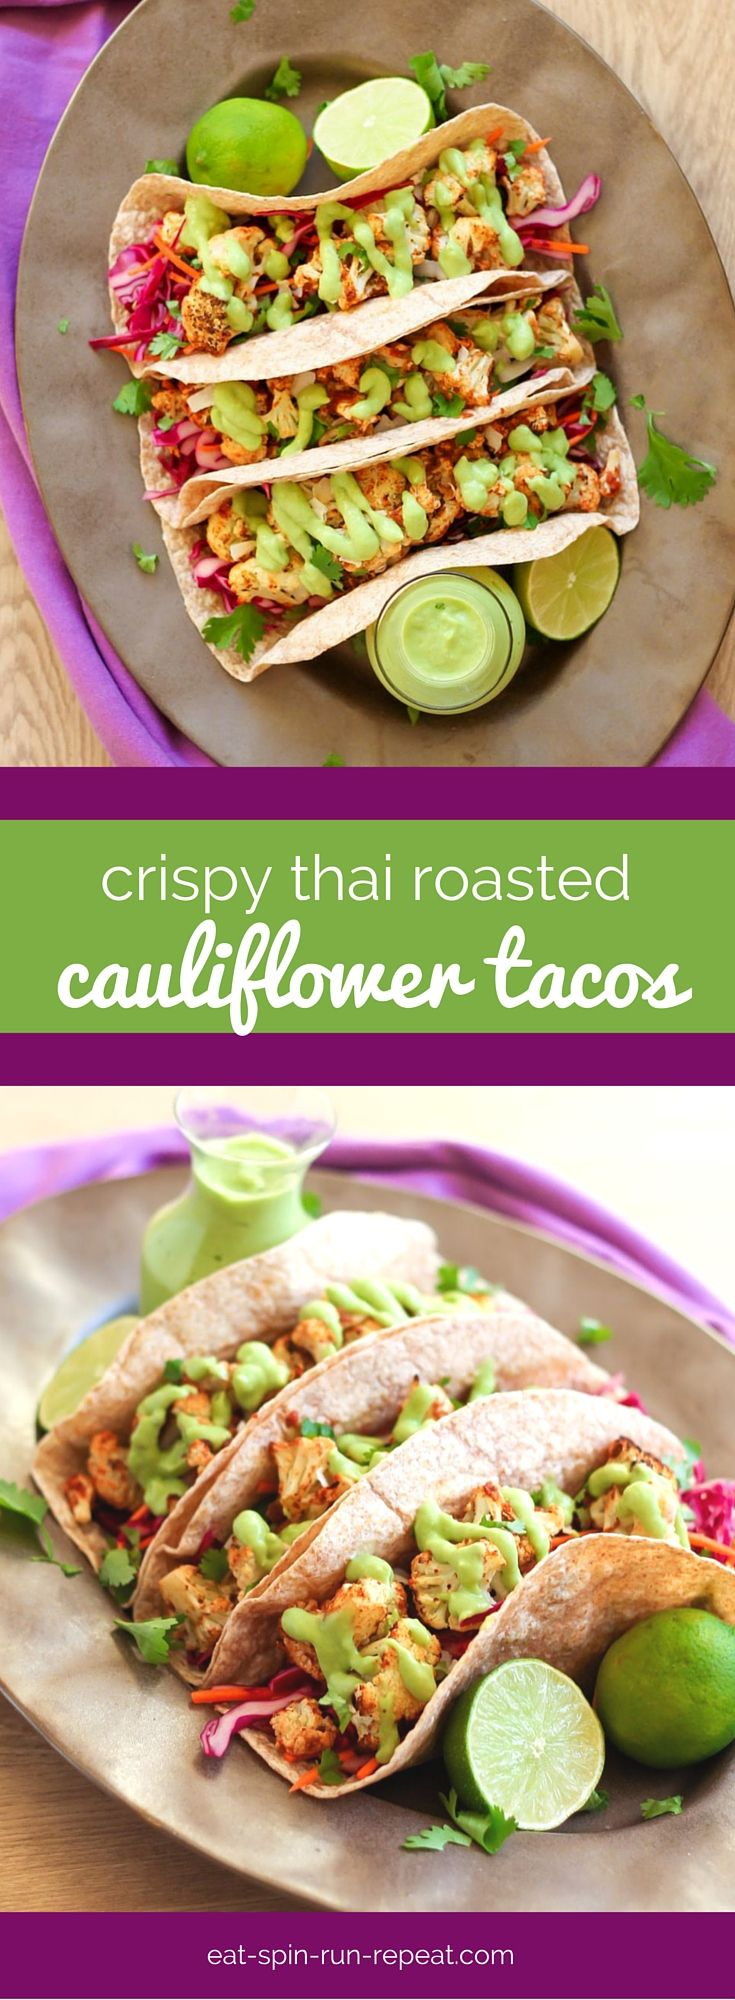 There's no doubt that cauliflower is having a moment, and it's the star of the show in these delicious vegan Crispy Thai Roasted Cauliflower Tacos!